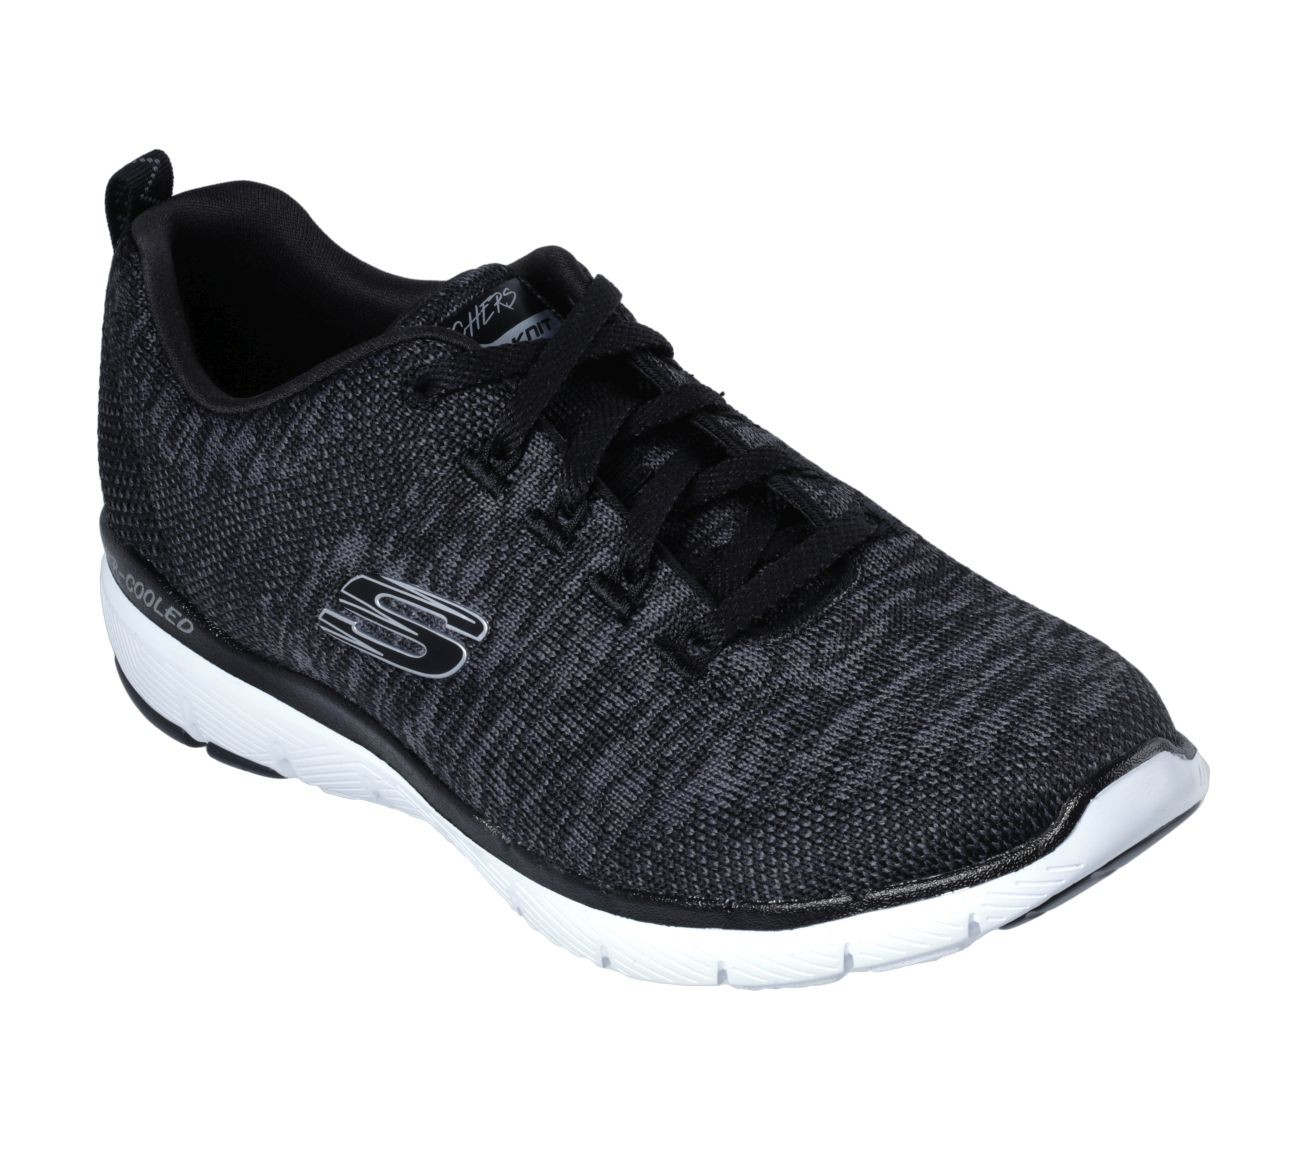 Skechers Womens Flex Appeal 3.0